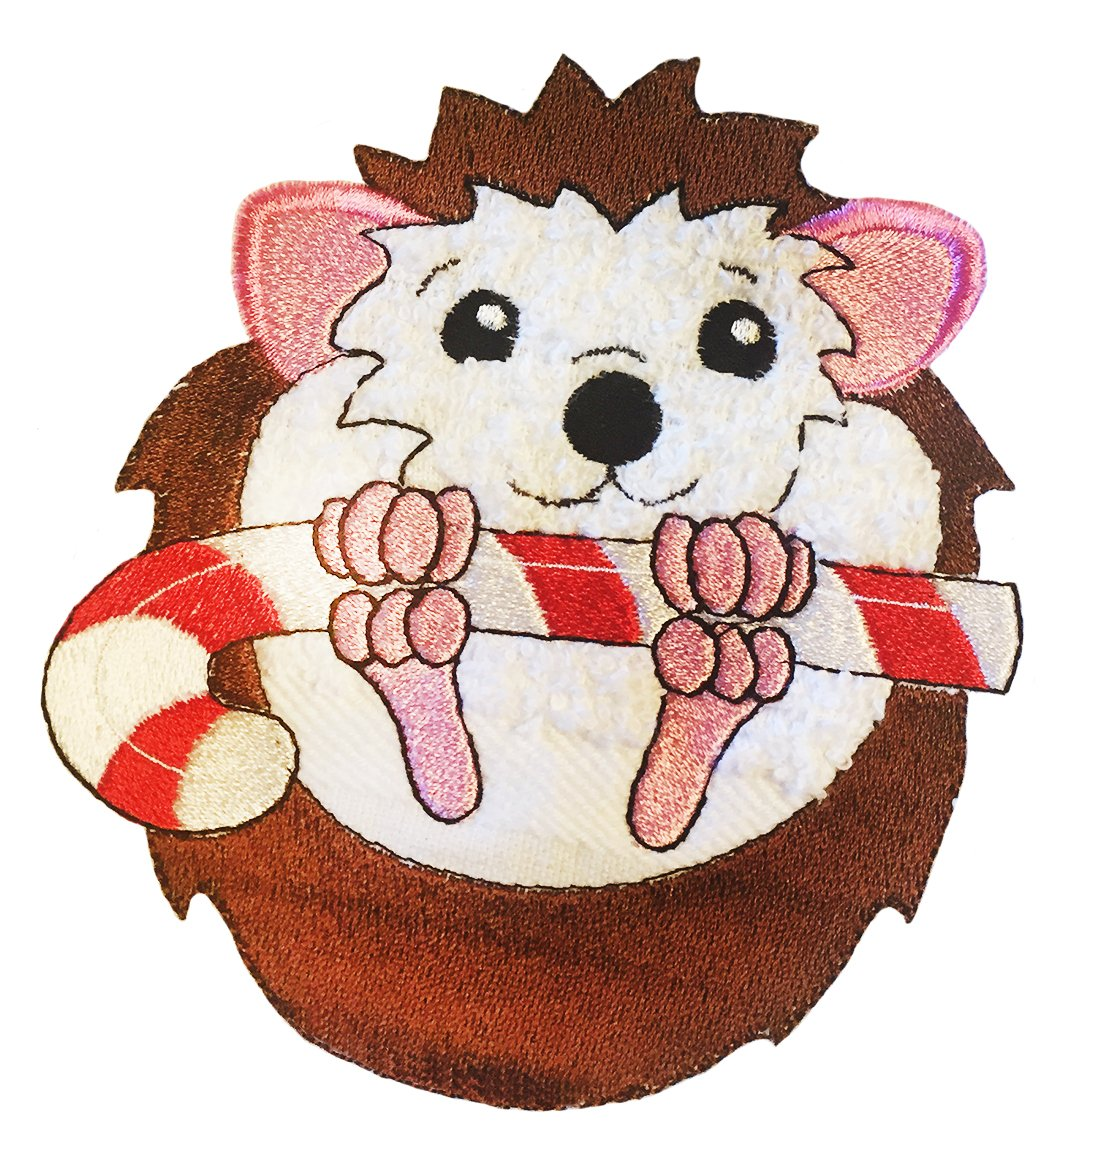 Hedgehog on Back with Candy Cane 5x7 Embroidery download